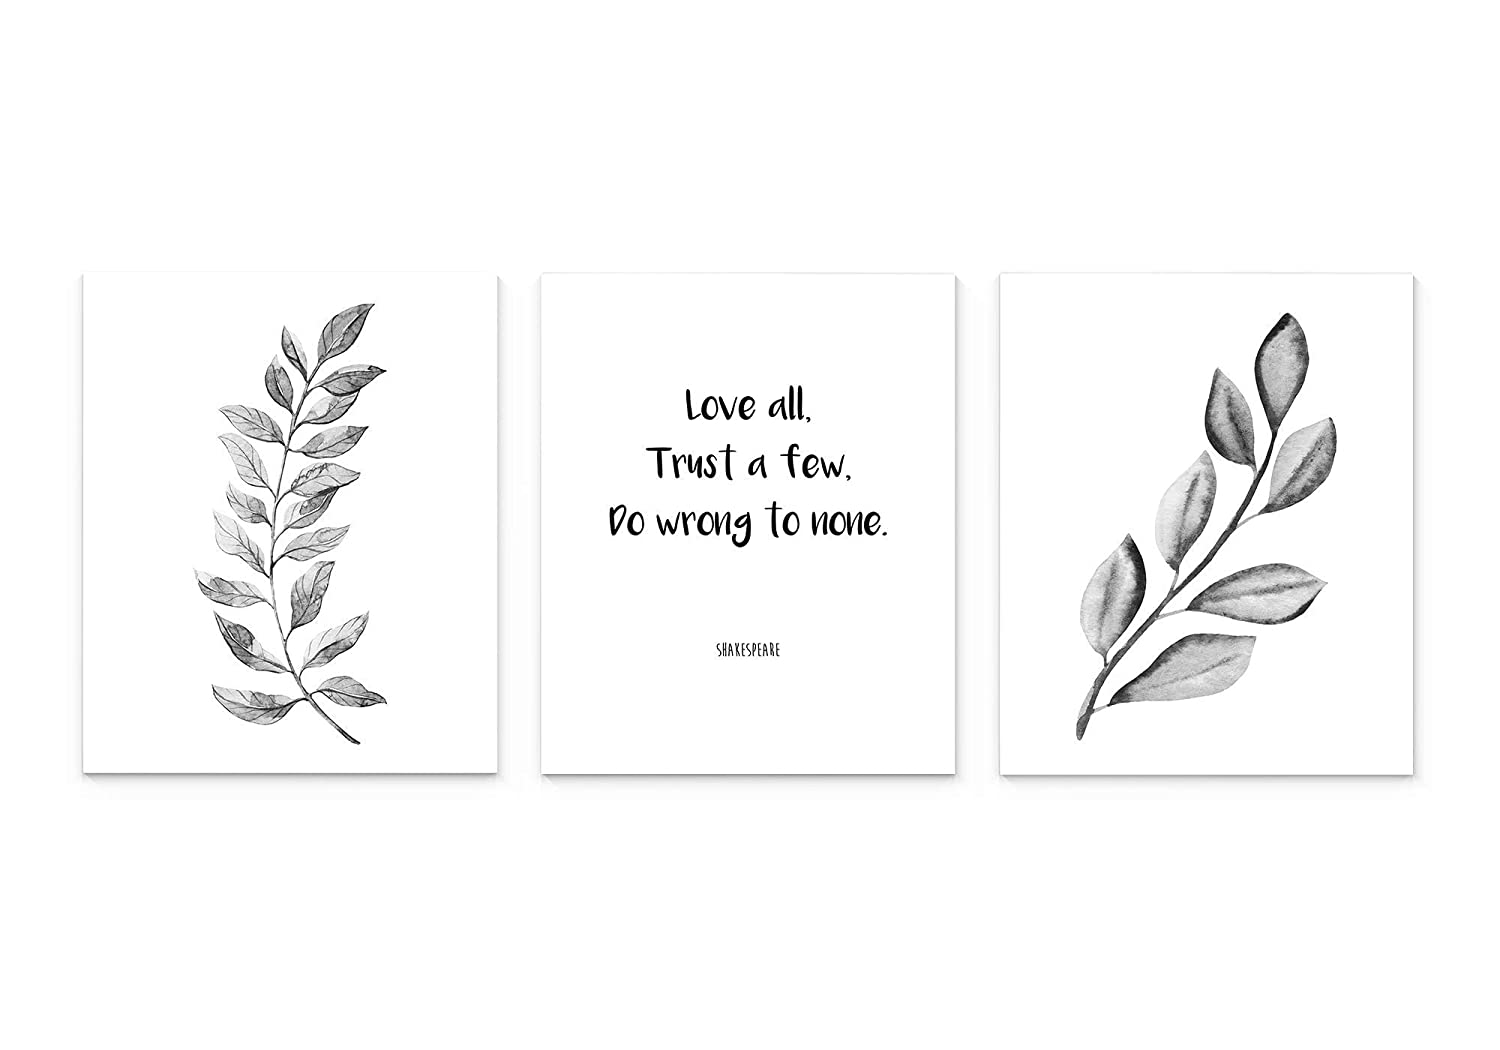 unisex Modern Black Regular store And White Tropical Leaf All A Love Trust Typography